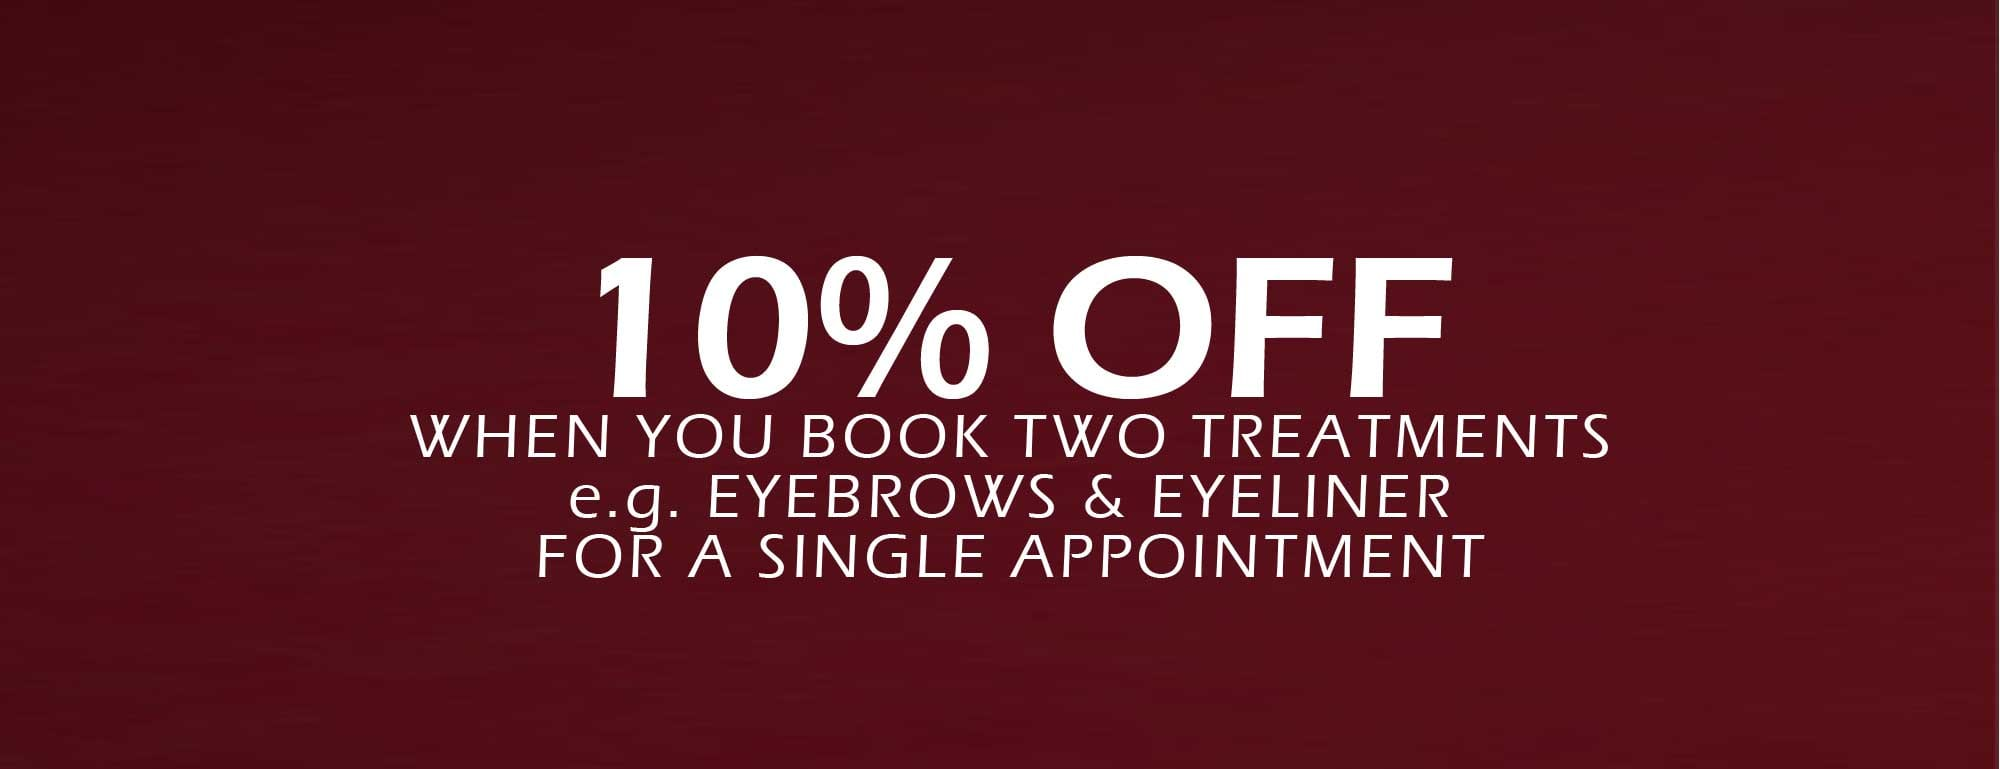 permanent makeup discount